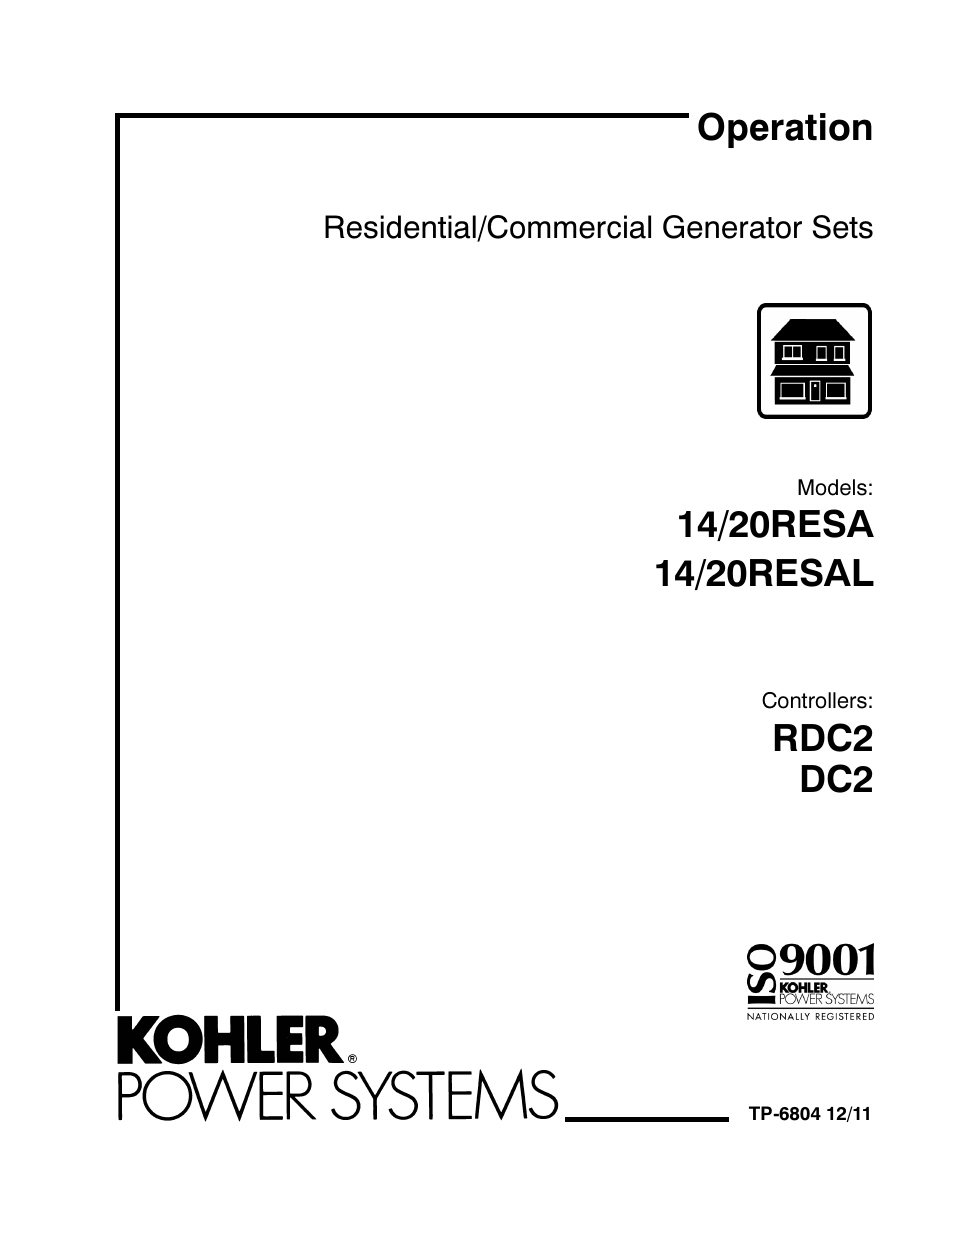 Kohler Power Systems 14/20RESA User Manual | 72 pages | Also for: Power  Systems 14/20RESAL